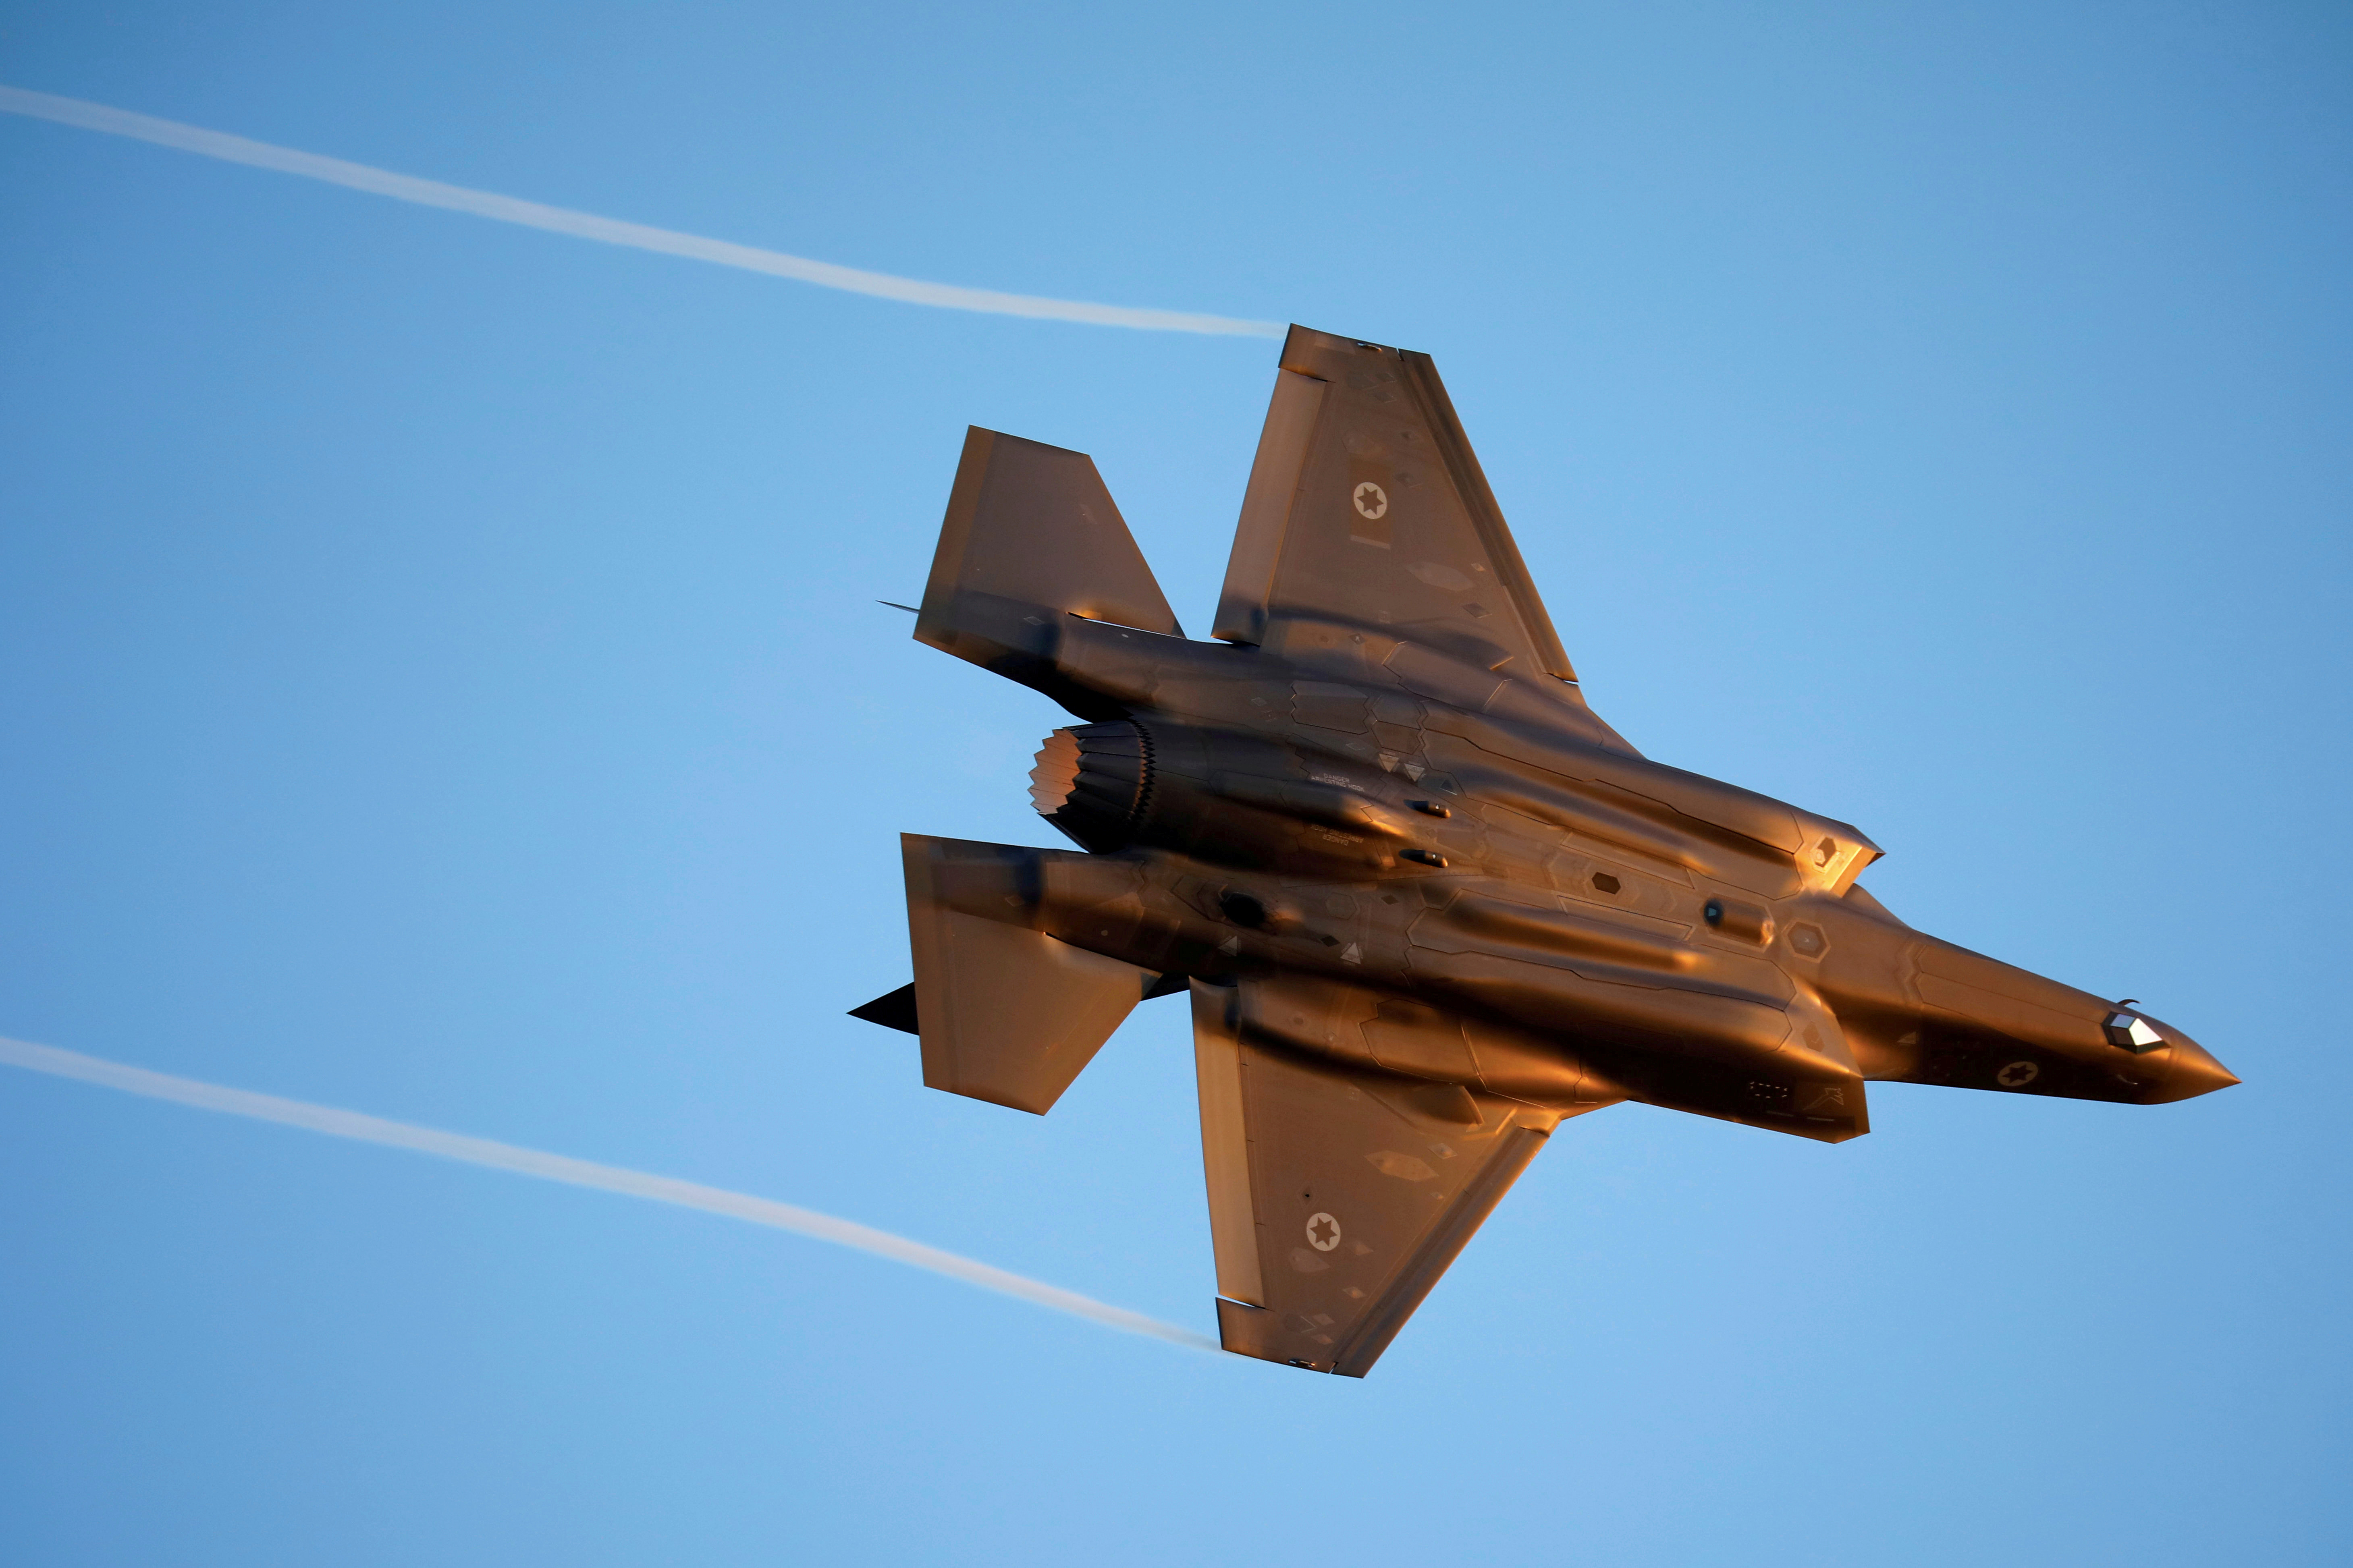 US Senators Attempt to Block F-35 Sale to UAE